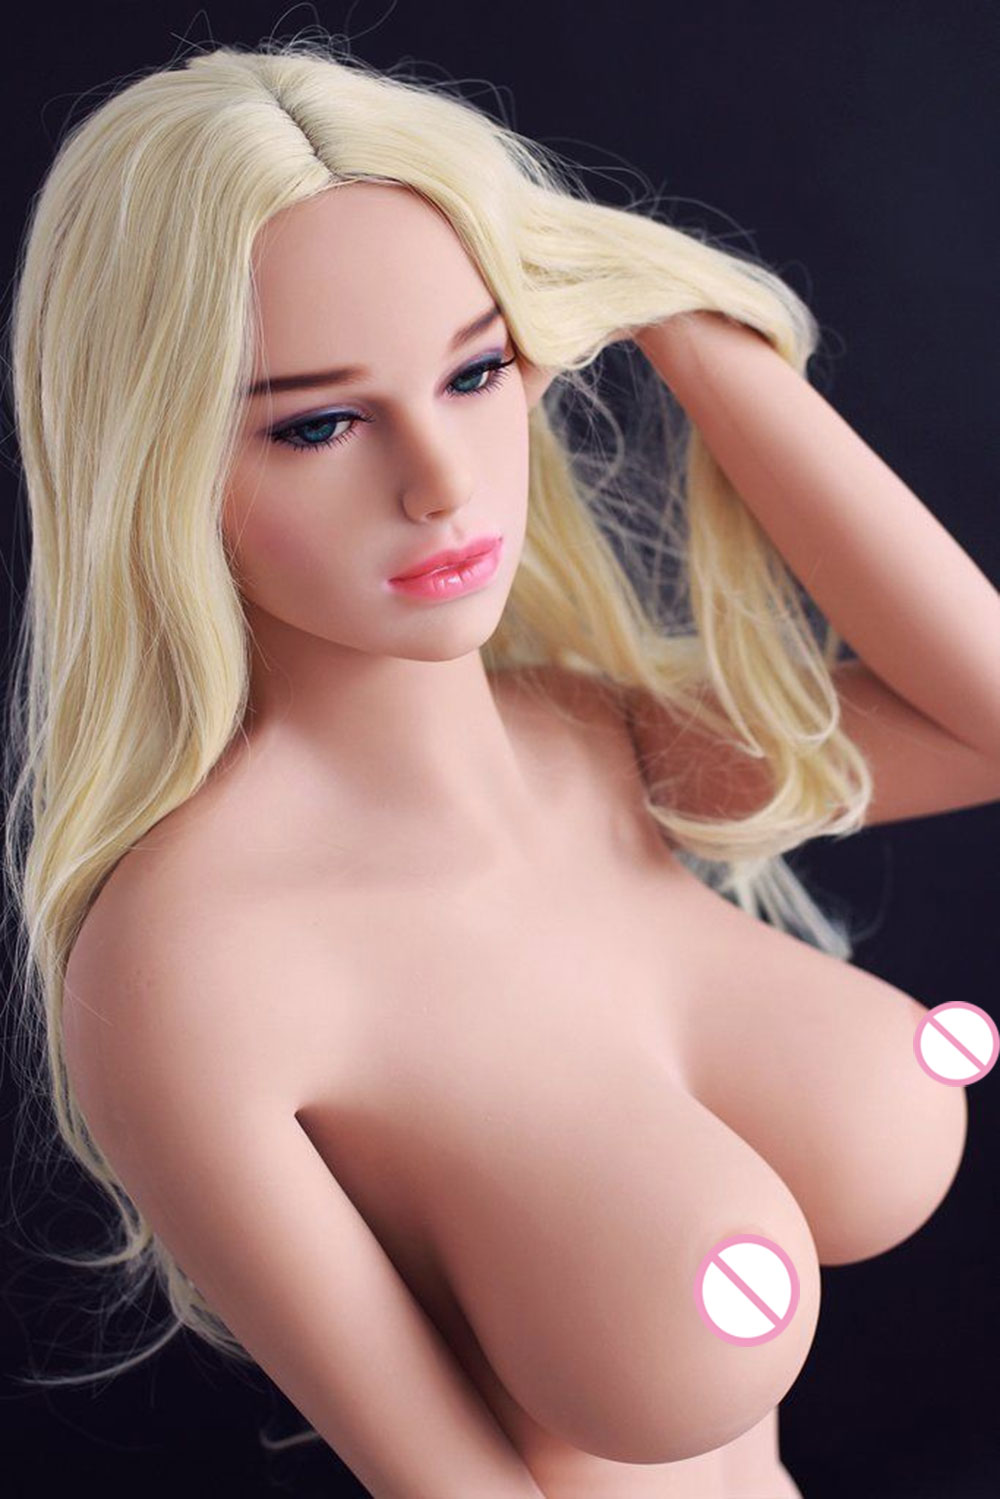 Lifelike Real Silicone Sex Dolls For Men The Sexual Doll Oral Anal Vagina Big Breast Male Masturbating Sex Dolls 165cm owd bob 165cm real love silicone sex doll with skeleton vagina sex toys for men the sexual dolls with silicone feet rubber woman